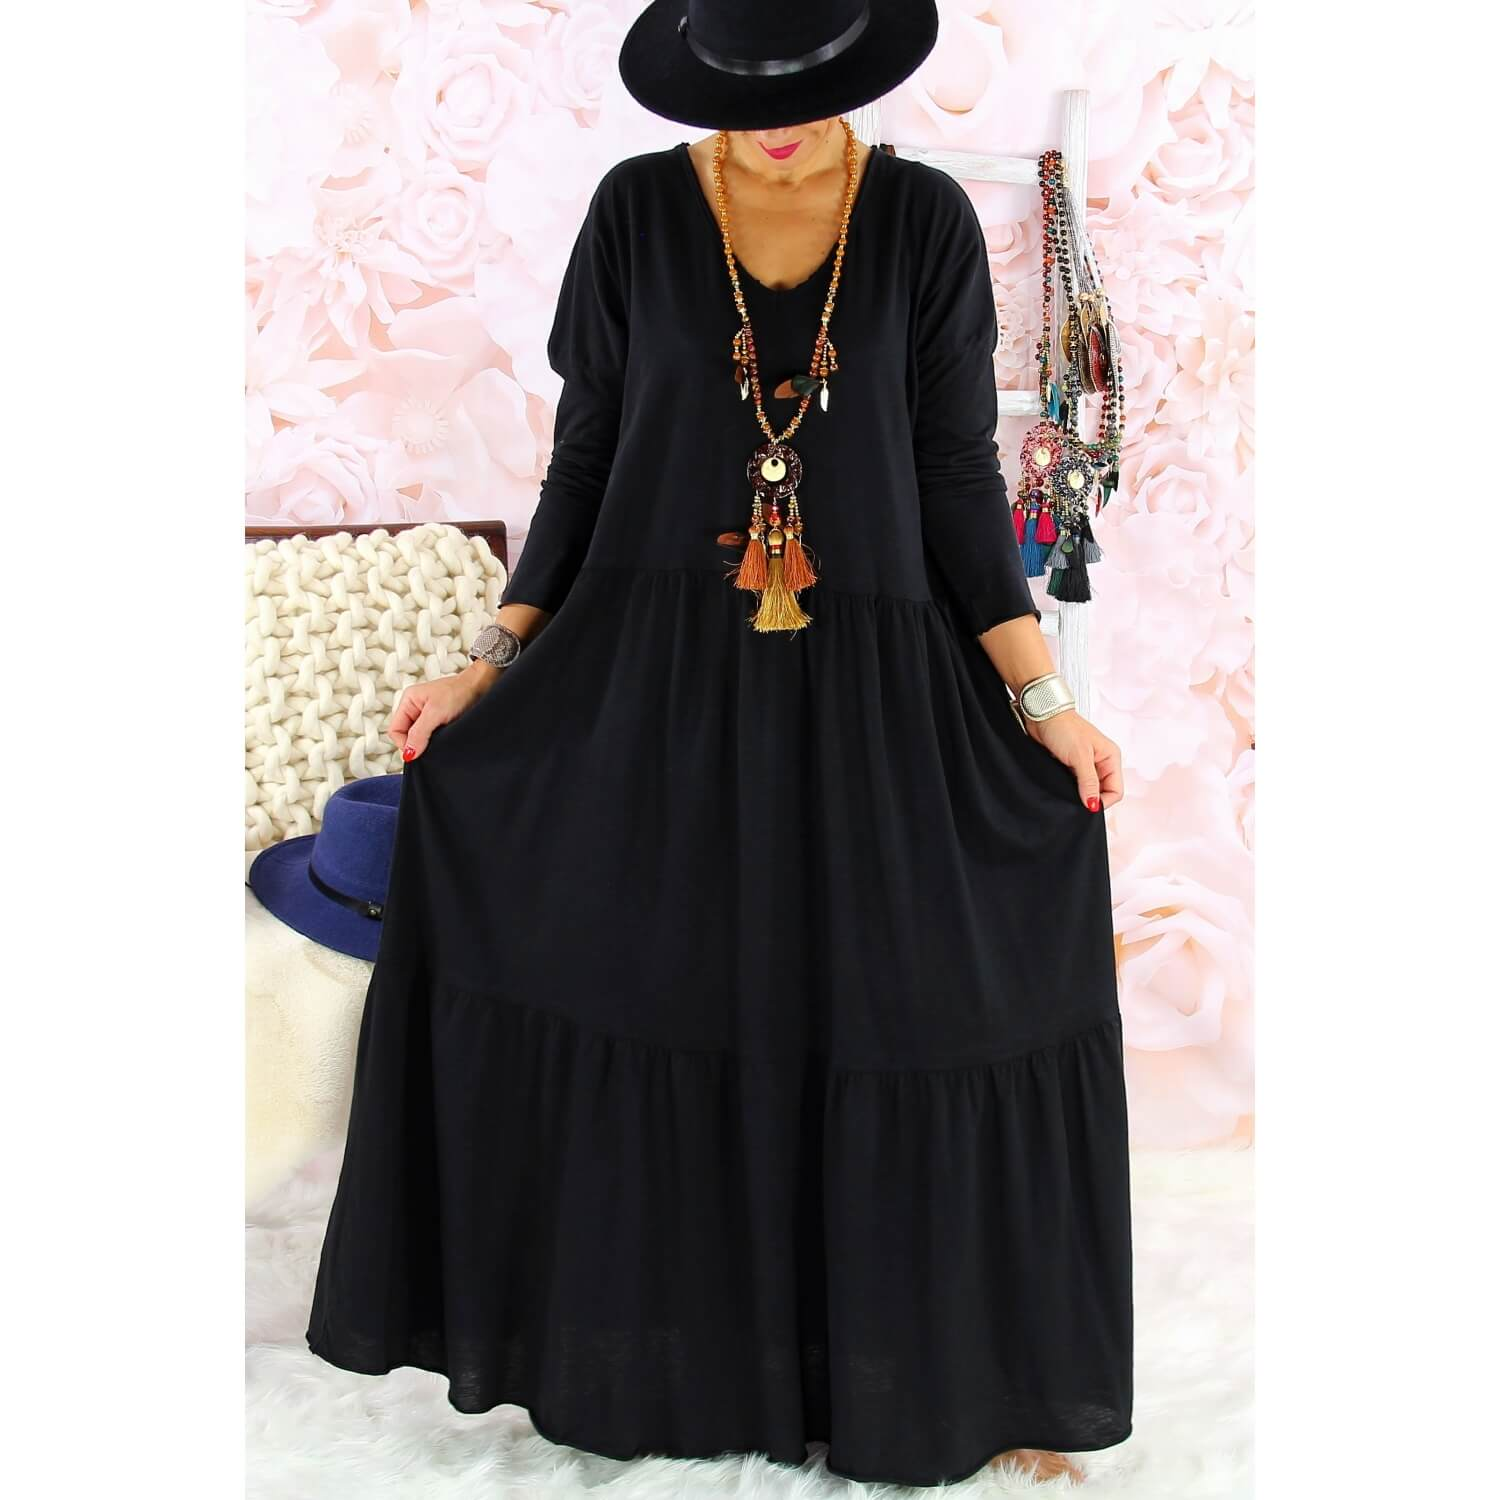 Robe Nouvel An Grande Taille 63 Remise Www Muminlerotomotiv Com Tr